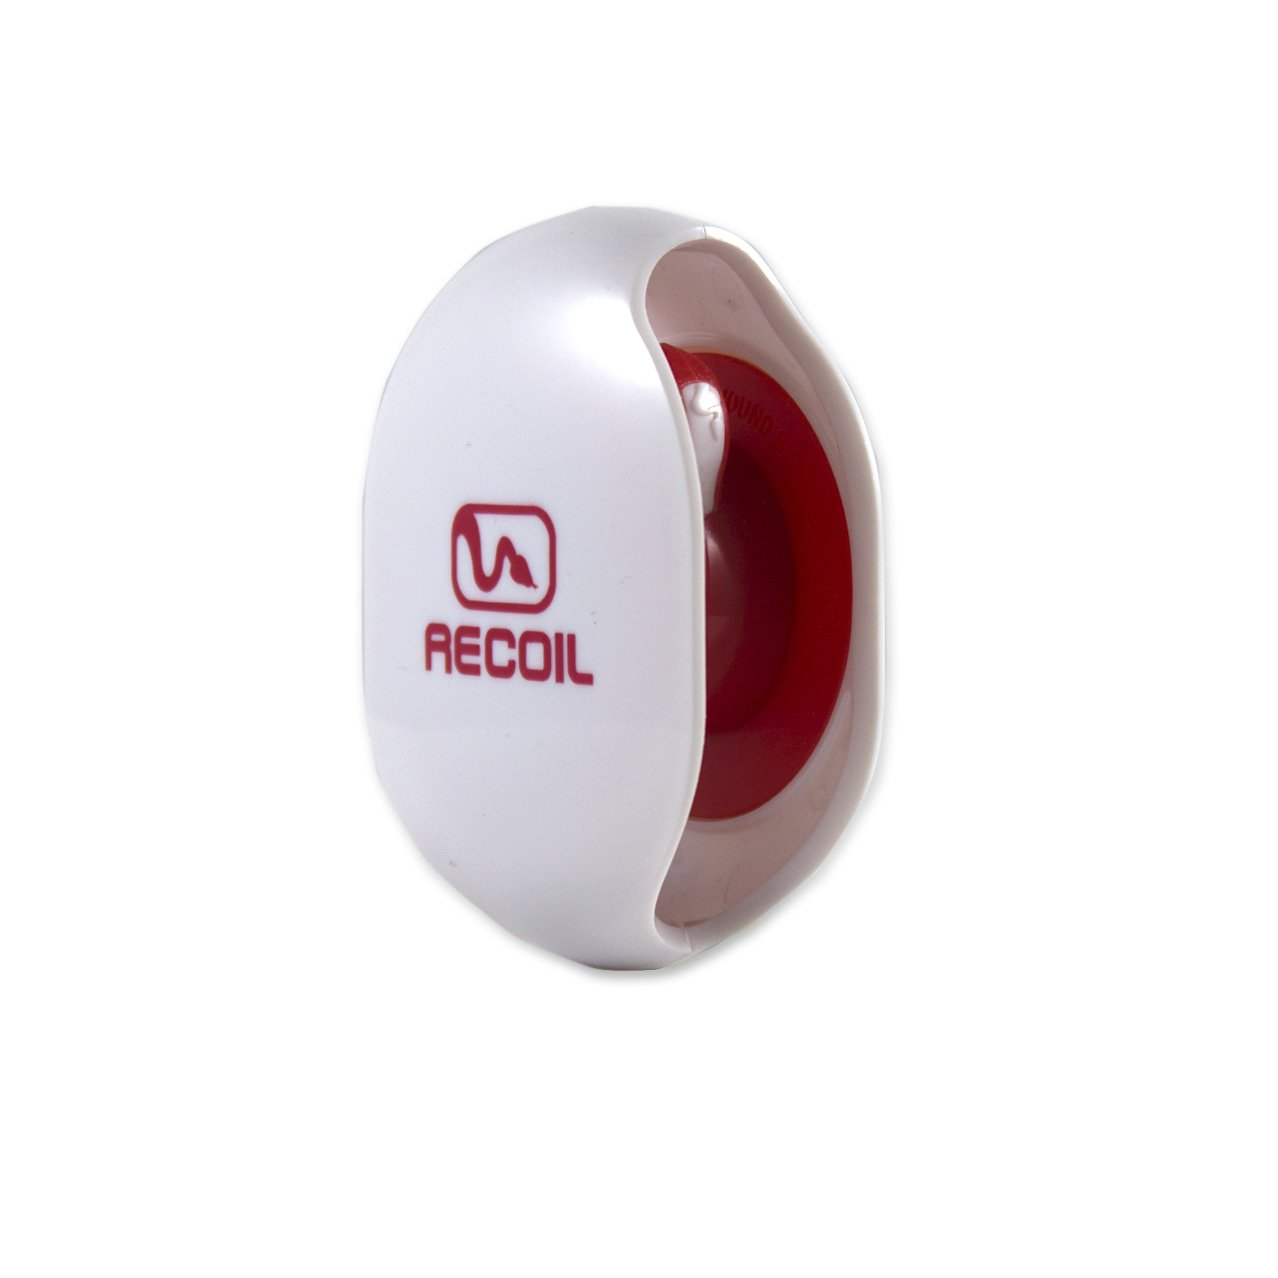 Amazon.com: Recoil AUTOMATIC Cord Winder for USB Cables, Phone ...